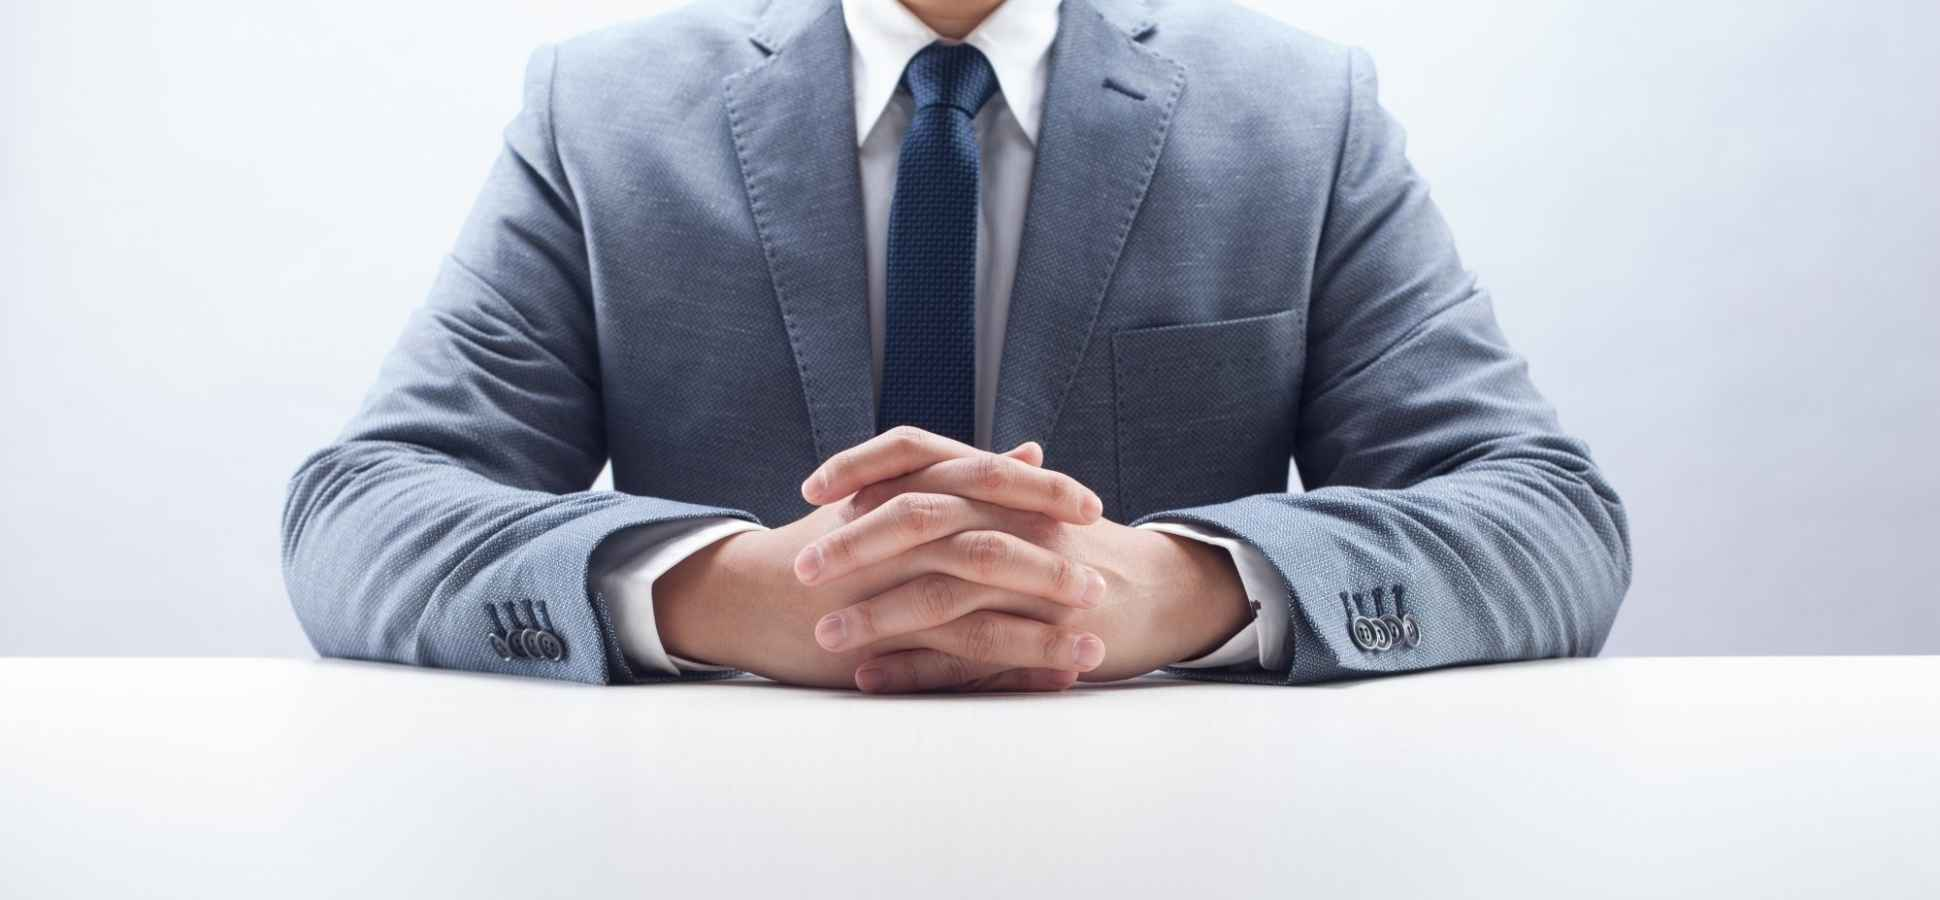 The Single Most Powerful Question to Ask in an Interview (and How Top Candidates Answer)